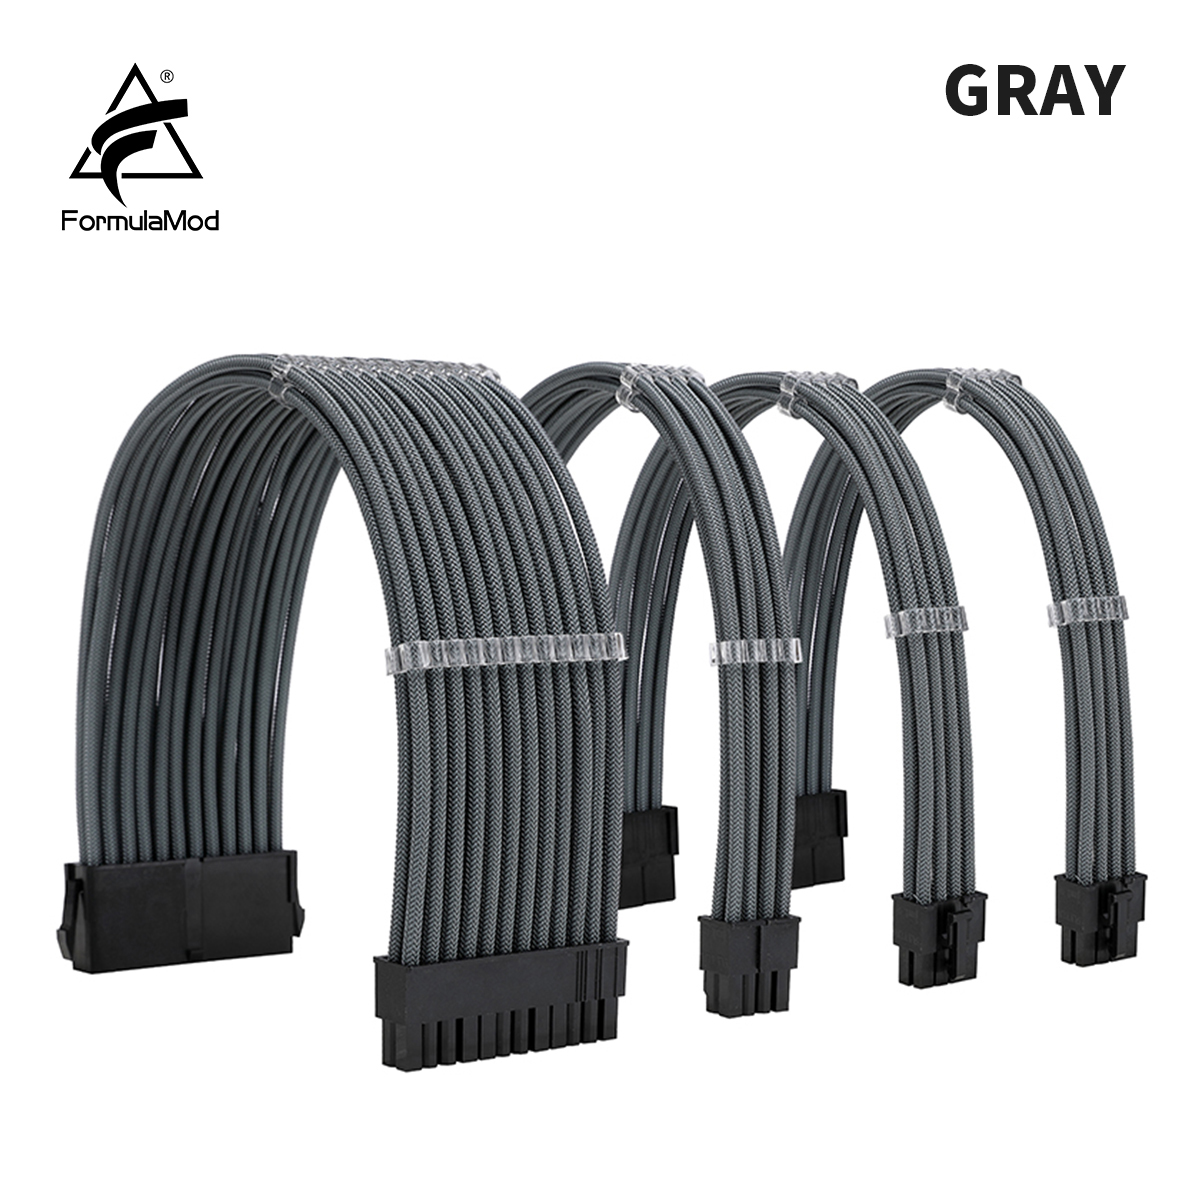 FormulaMod NCK1 Series PSU Extension Cable Kit , Solid Color Cable Solid Combo 300mm ATX24Pin PCI-E8Pin CPU8Pin With Combs